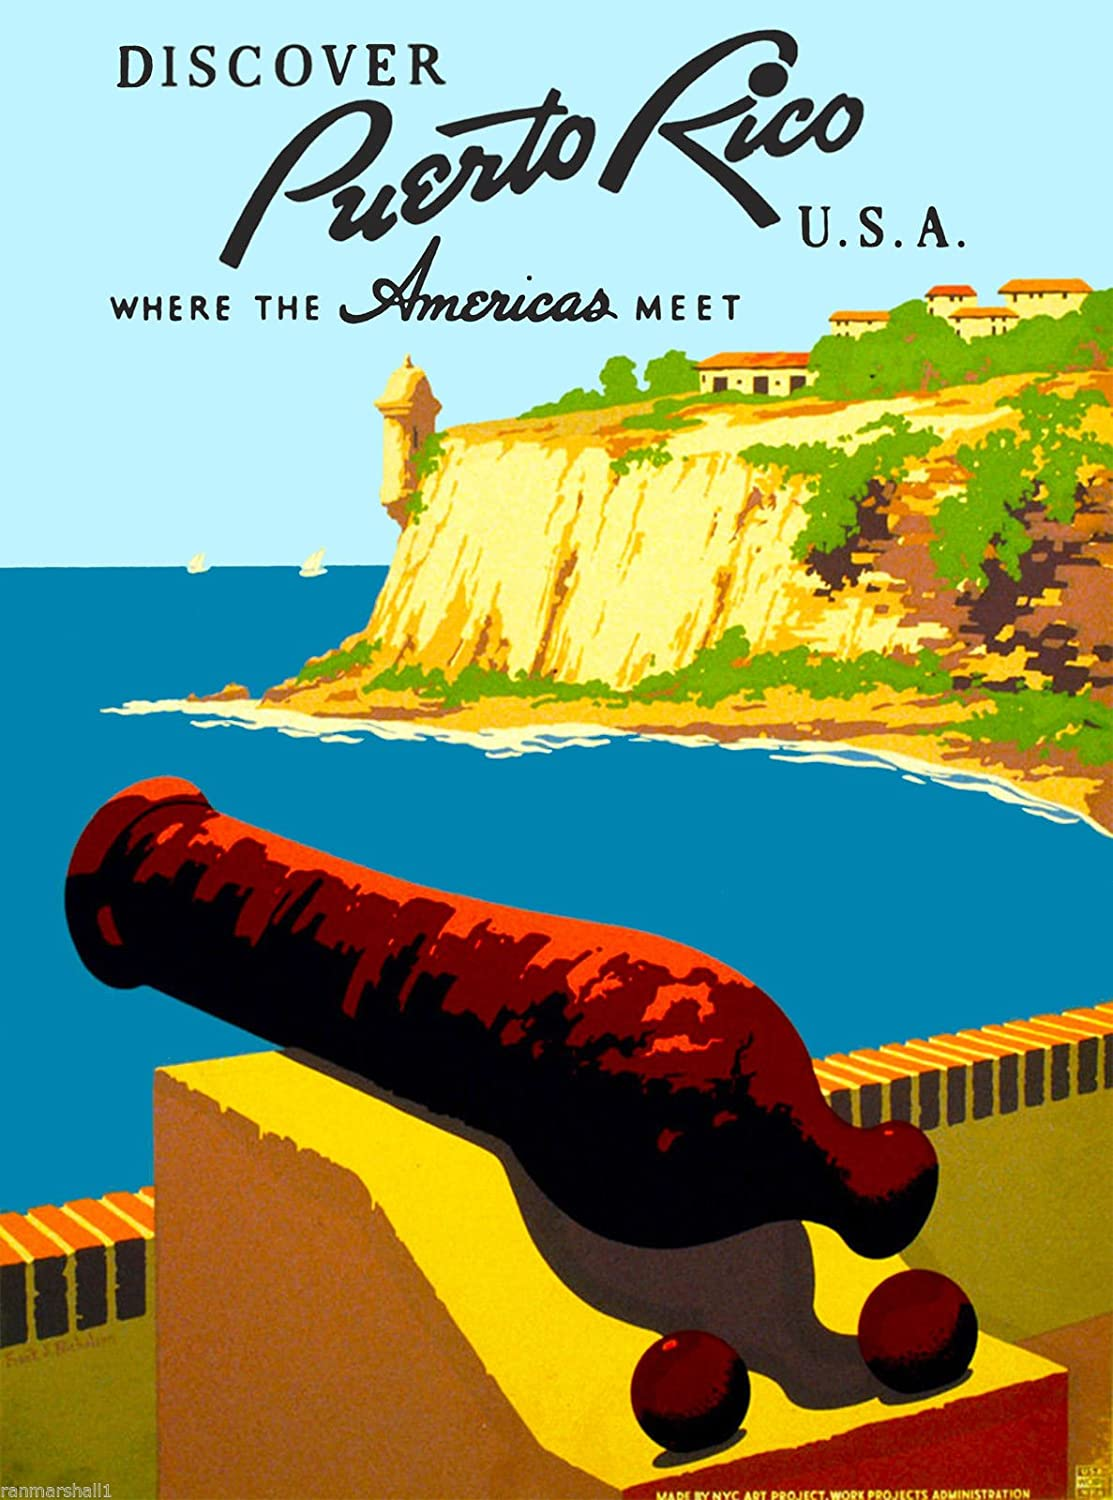 A SLICE IN TIME 1930s Discover Puerto Rico United States Caribbean Island Vintage Travel Advertisement Art Collectible Wall Decor Poster Print. Measures 10 x 13.5 inches